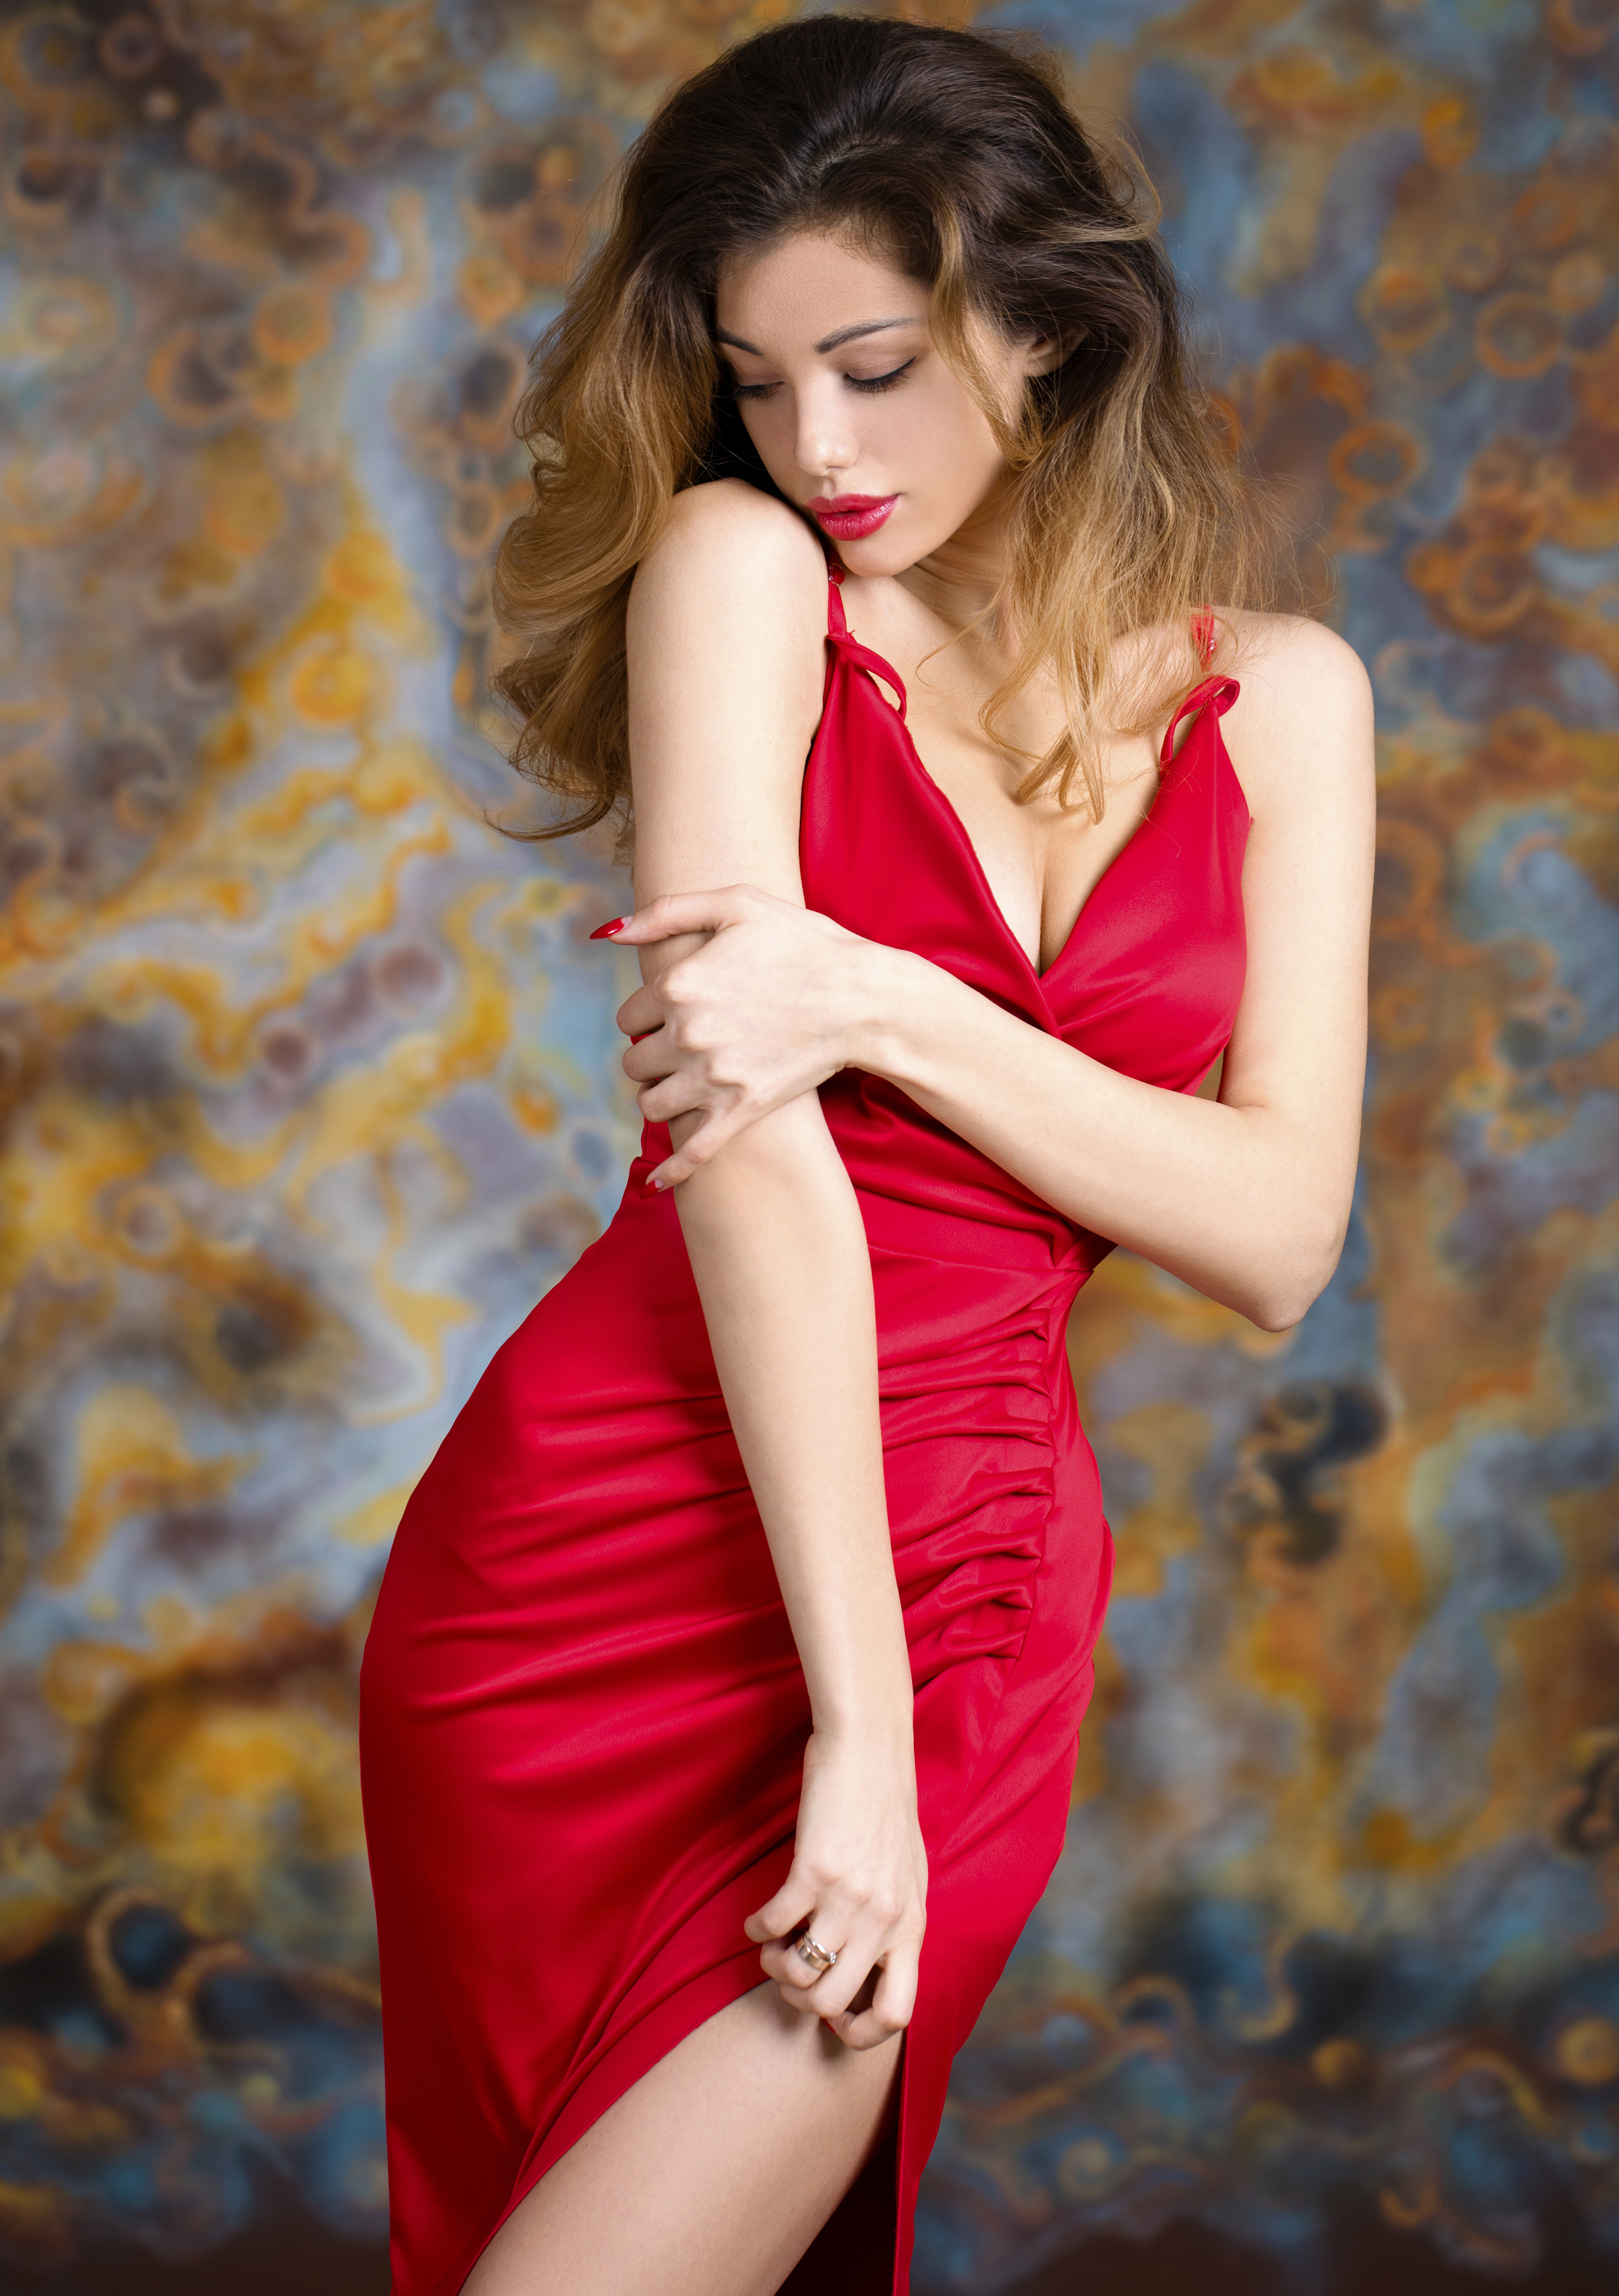 Red skirt, beauty, character 55277